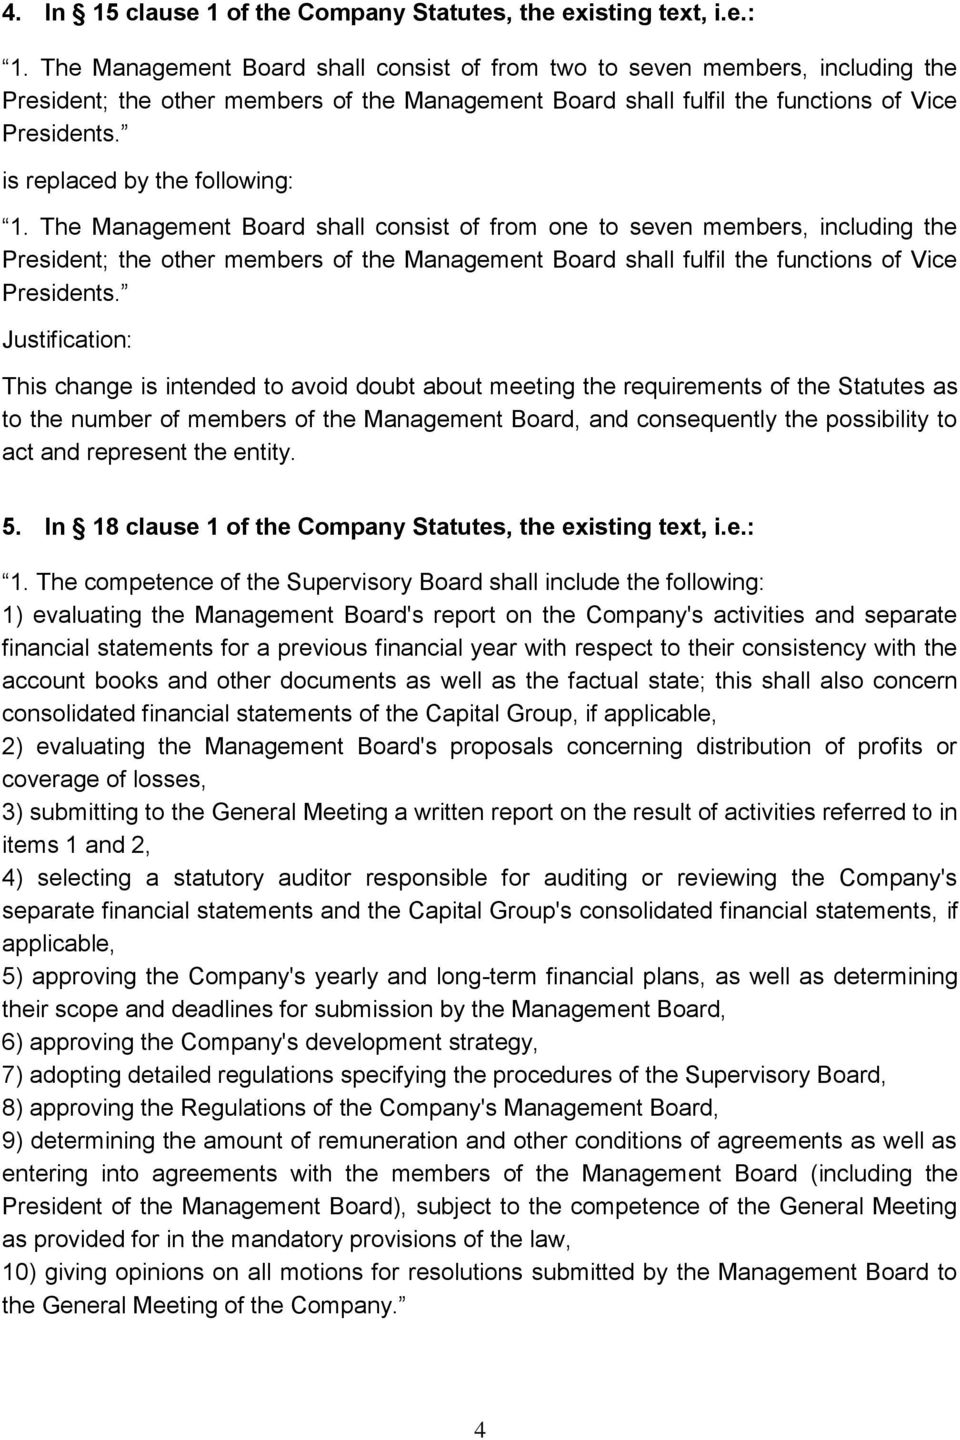 The Management Board shall consist of from one to seven members, including the President; the other members of the Management Board shall fulfil the functions of Vice Presidents.